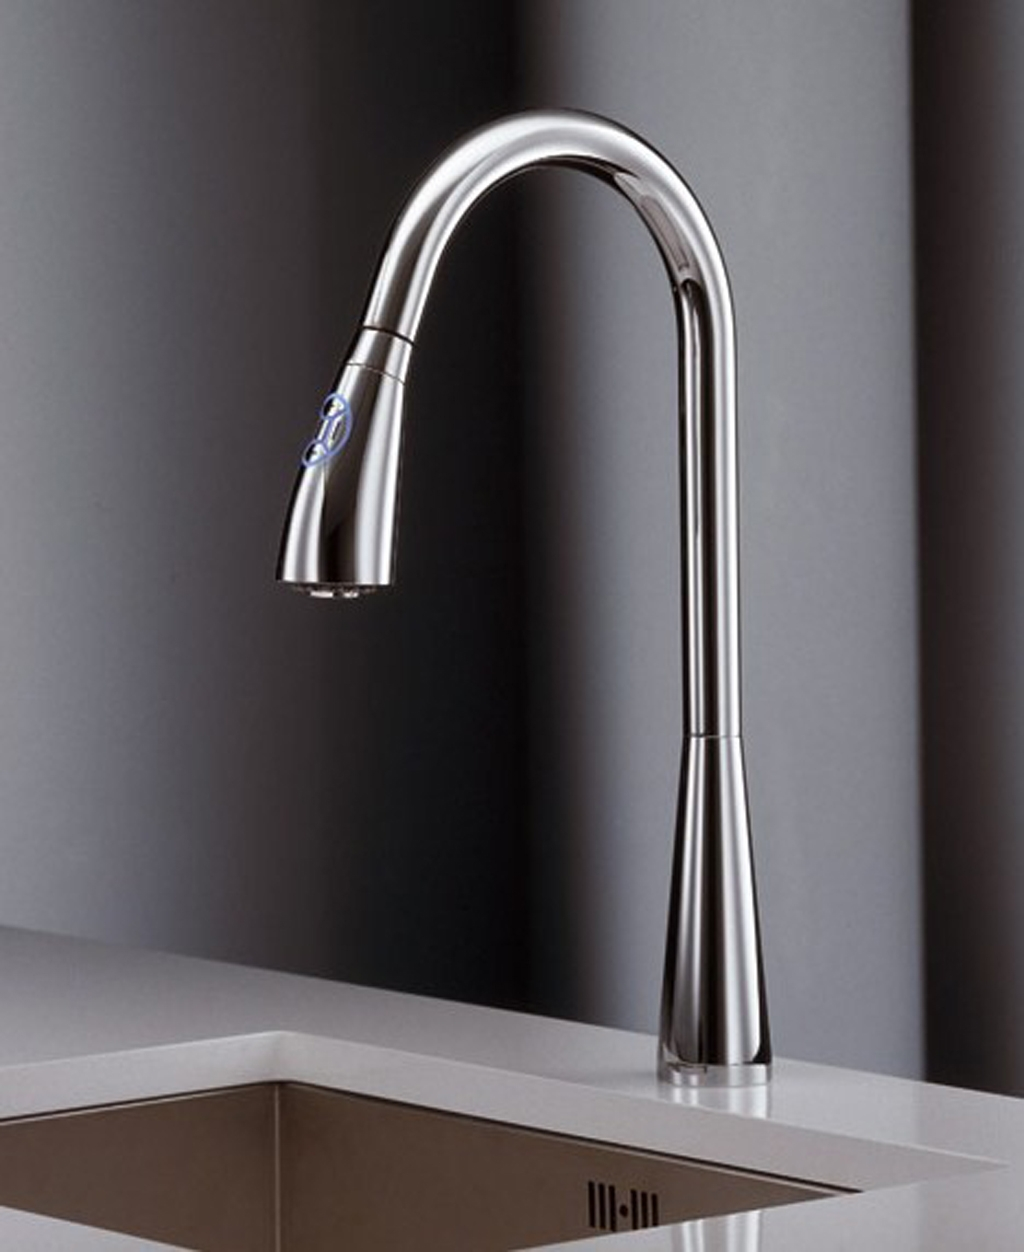 Ideas, tall kitchen sink faucets tall kitchen sink faucets faucet delta kitchen sink faucets tall kitchen faucet with spray 1024 x 1252  .